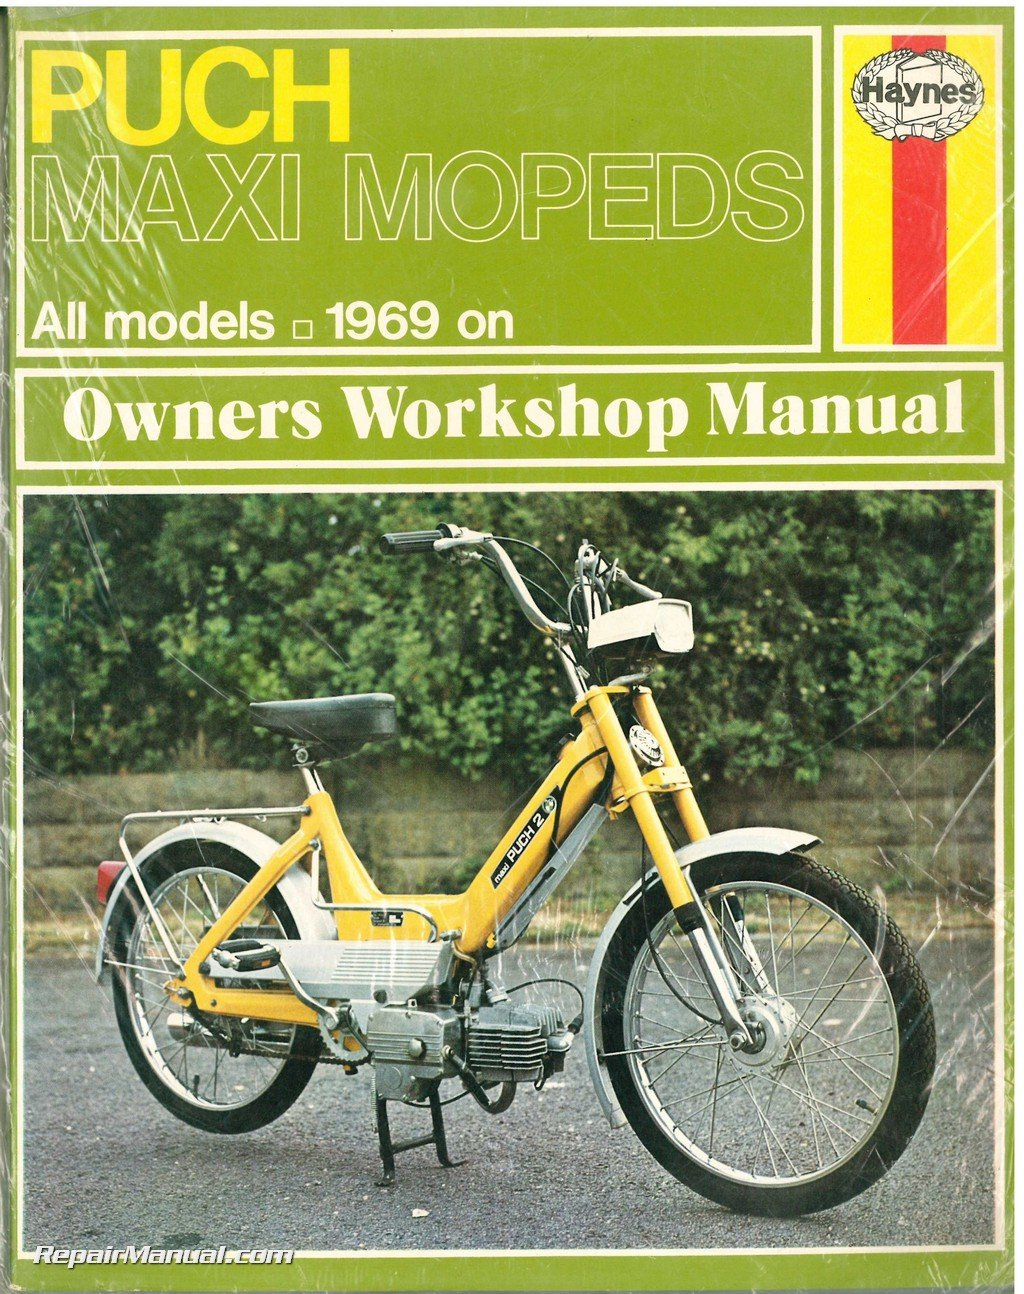 H107 Puch Maxi Moped Owner's Workshop Manual: Manufacturer